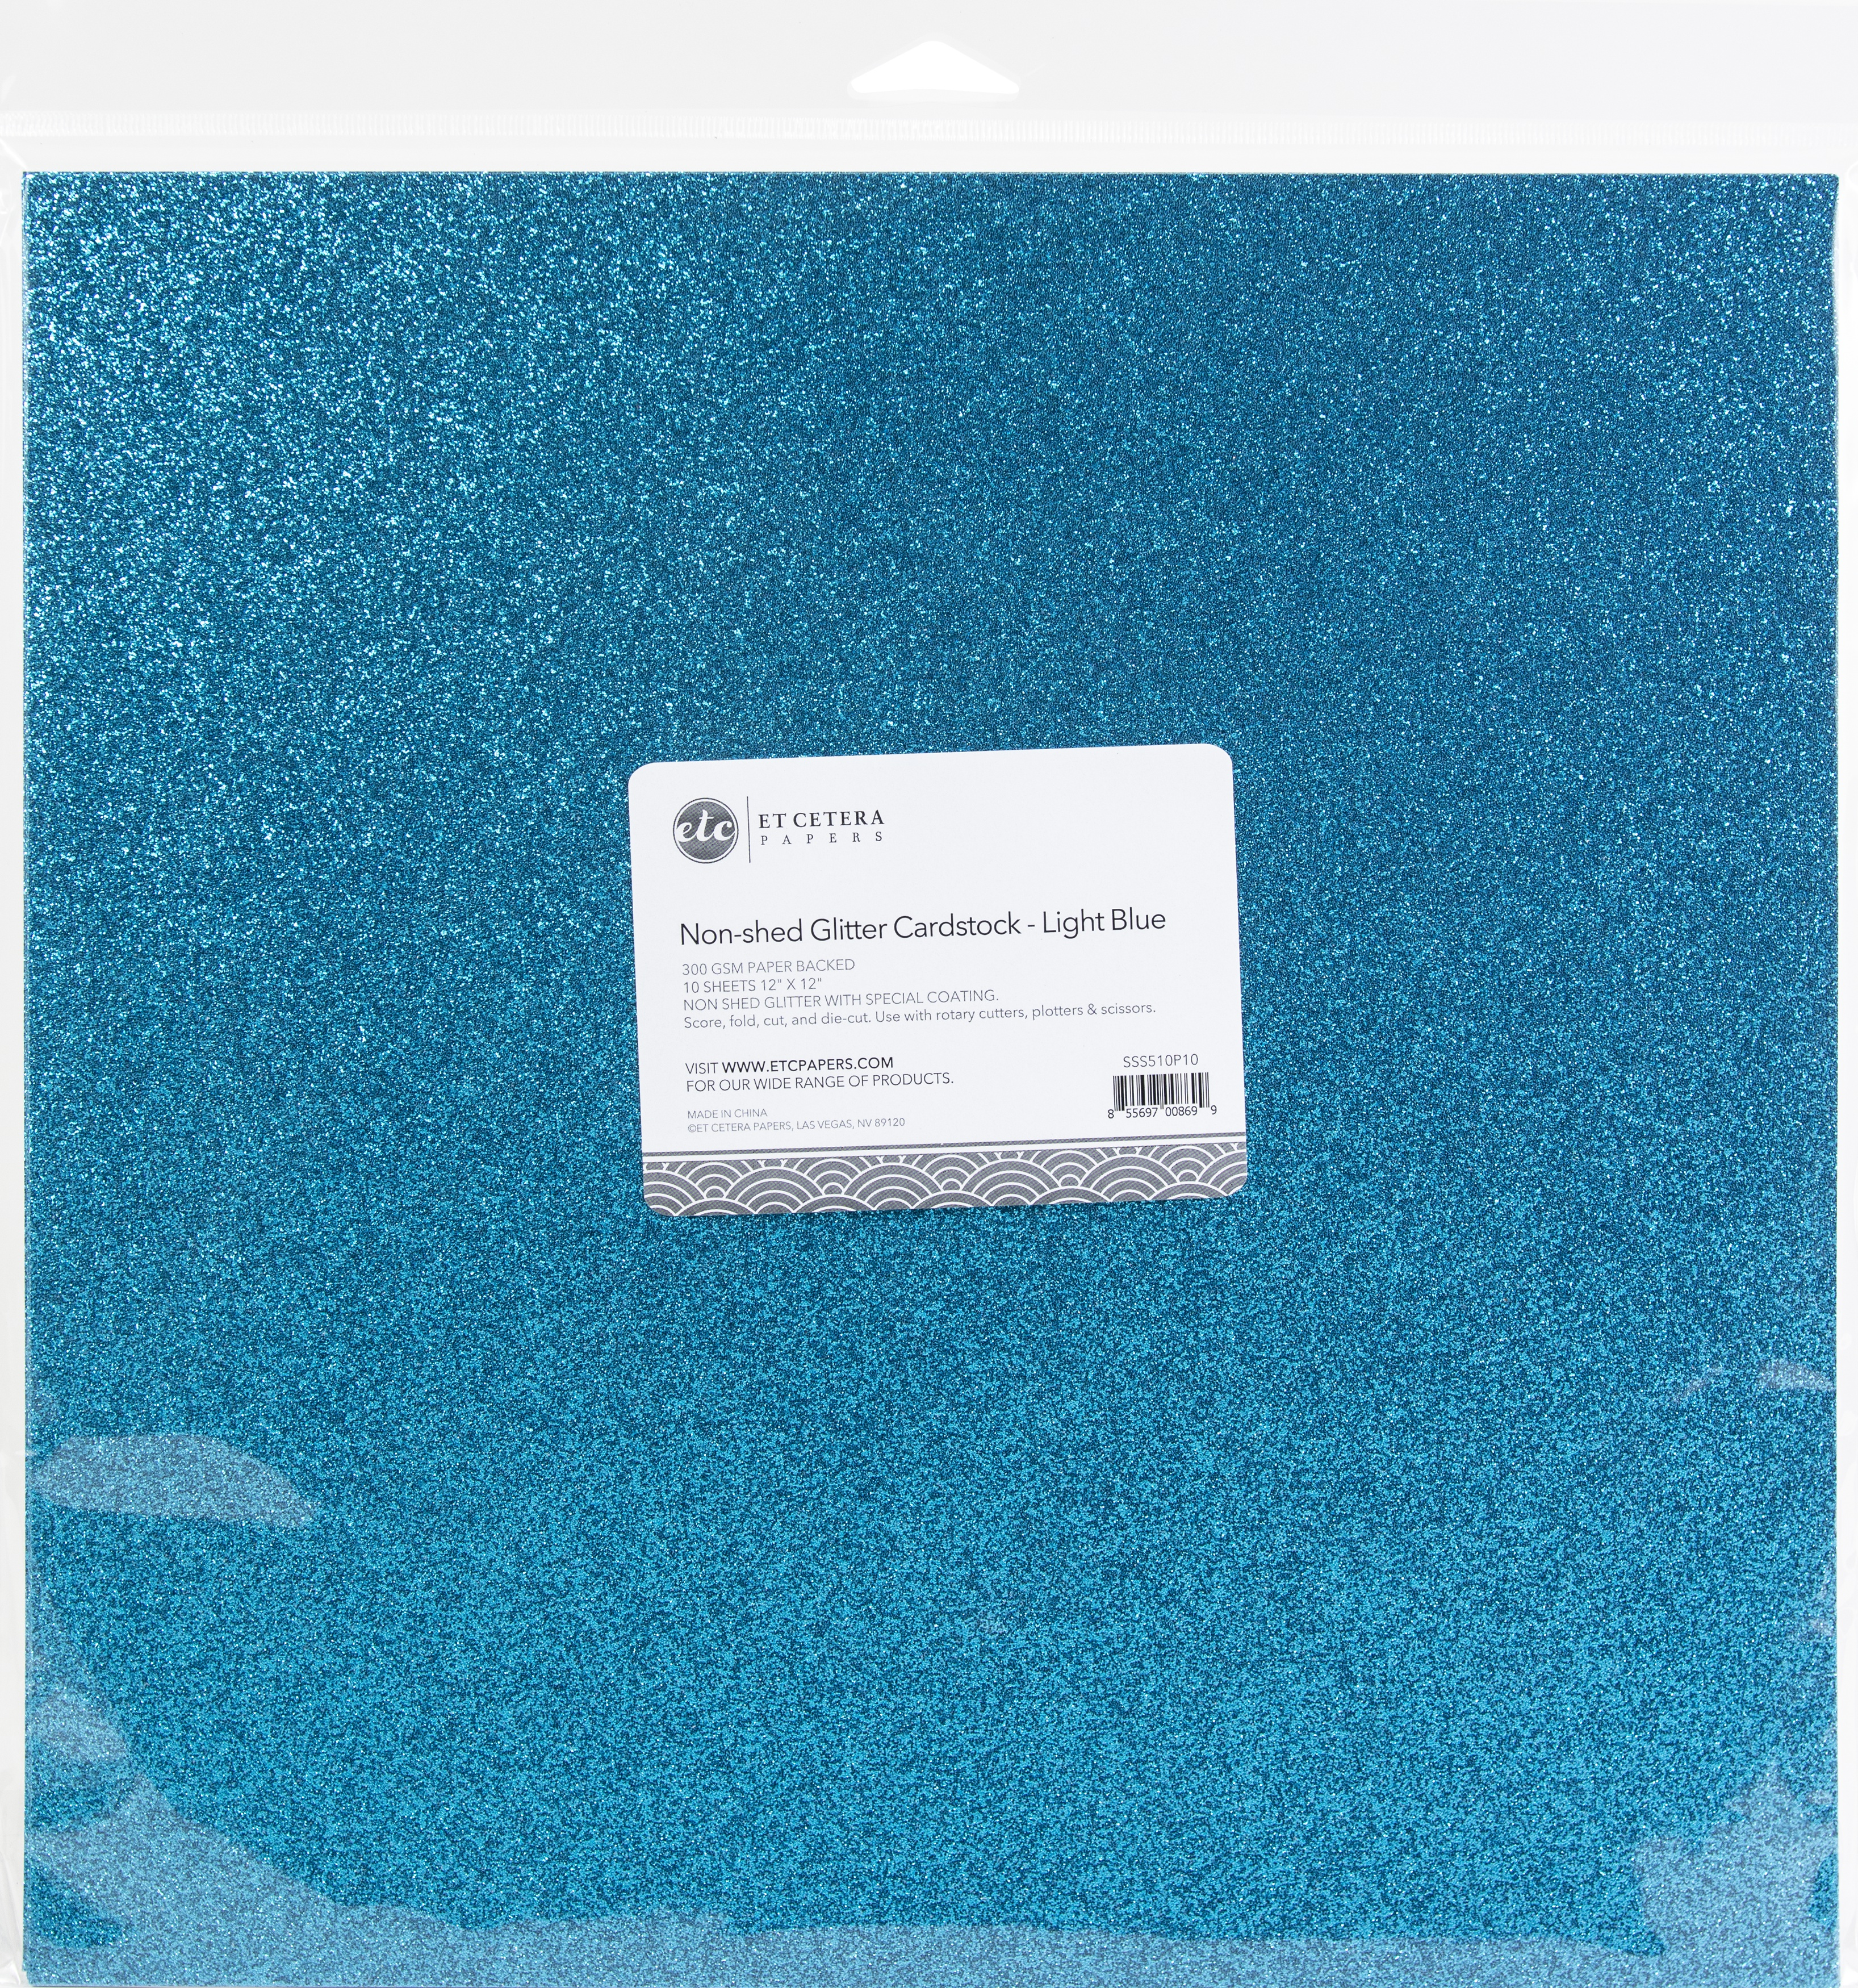 Non-Shed Glitter Cardstock - Light Blue, 12x12